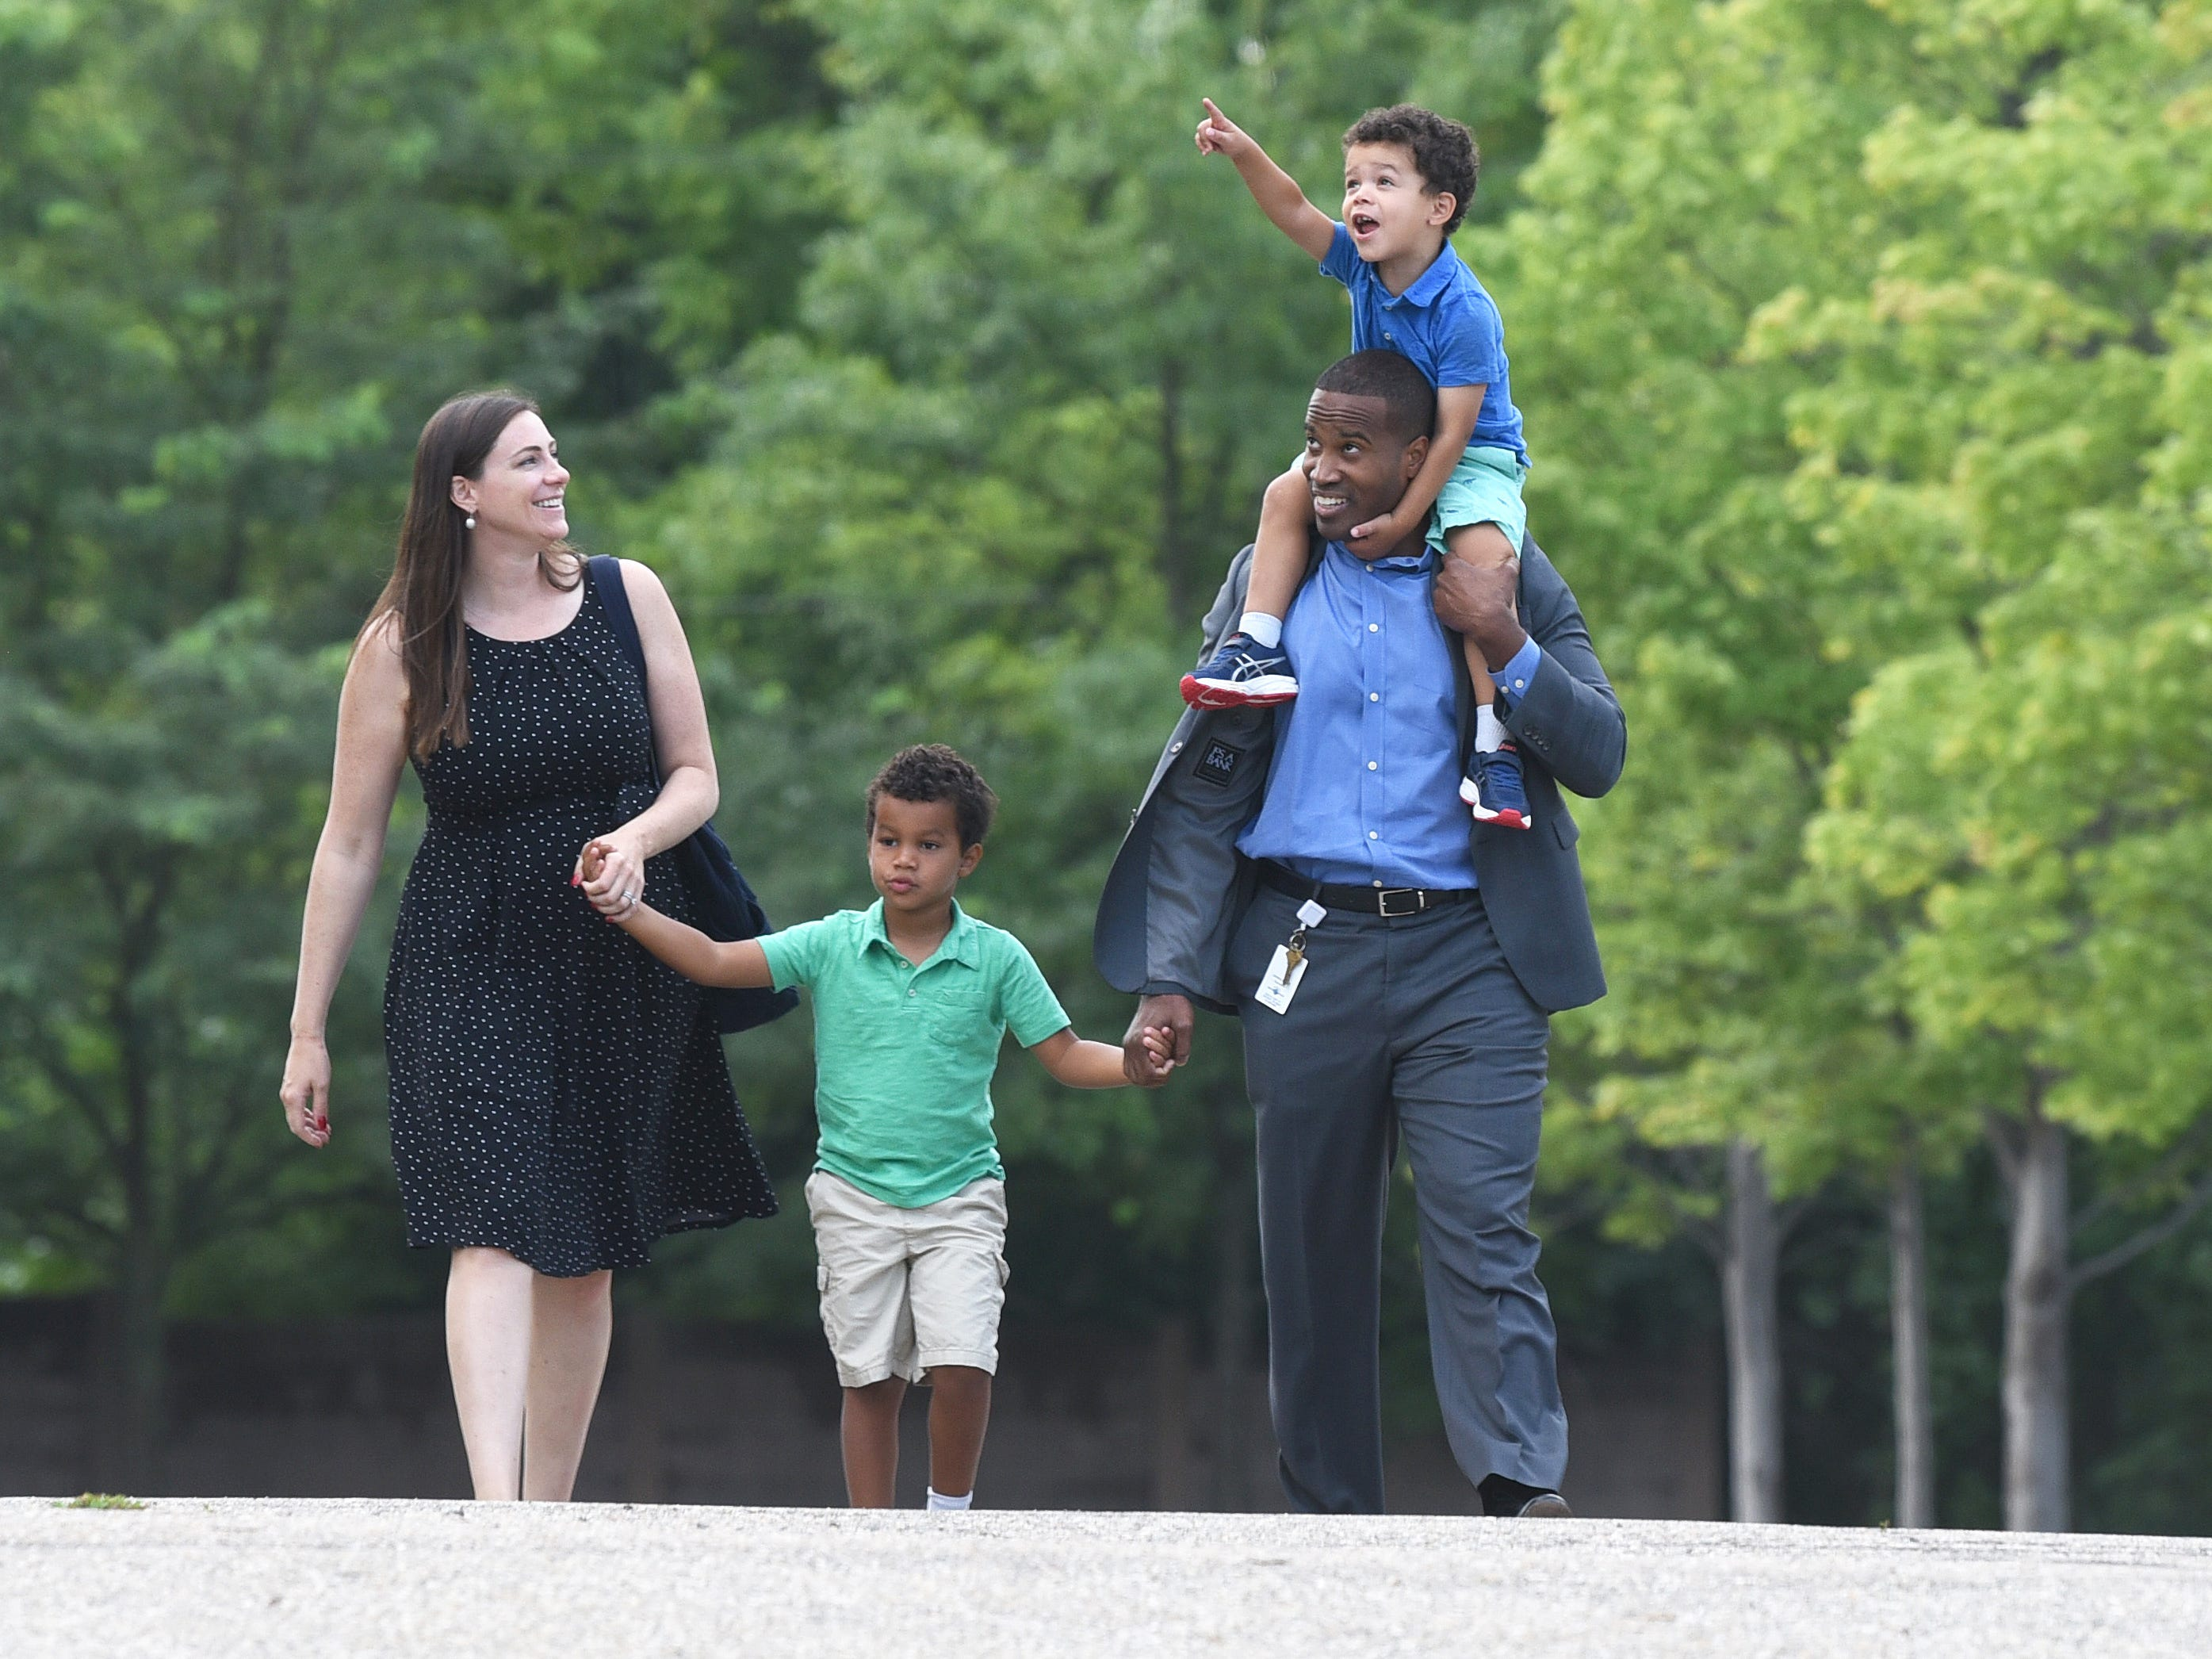 U.S. Senate candidate John James carries his son Hudson on his shoulders and walks toward the voting precinct with his wife Elizabeth and son John on Tuesday, August 7, 2018 at Orchard United Methodist Church in Farmington Hills.